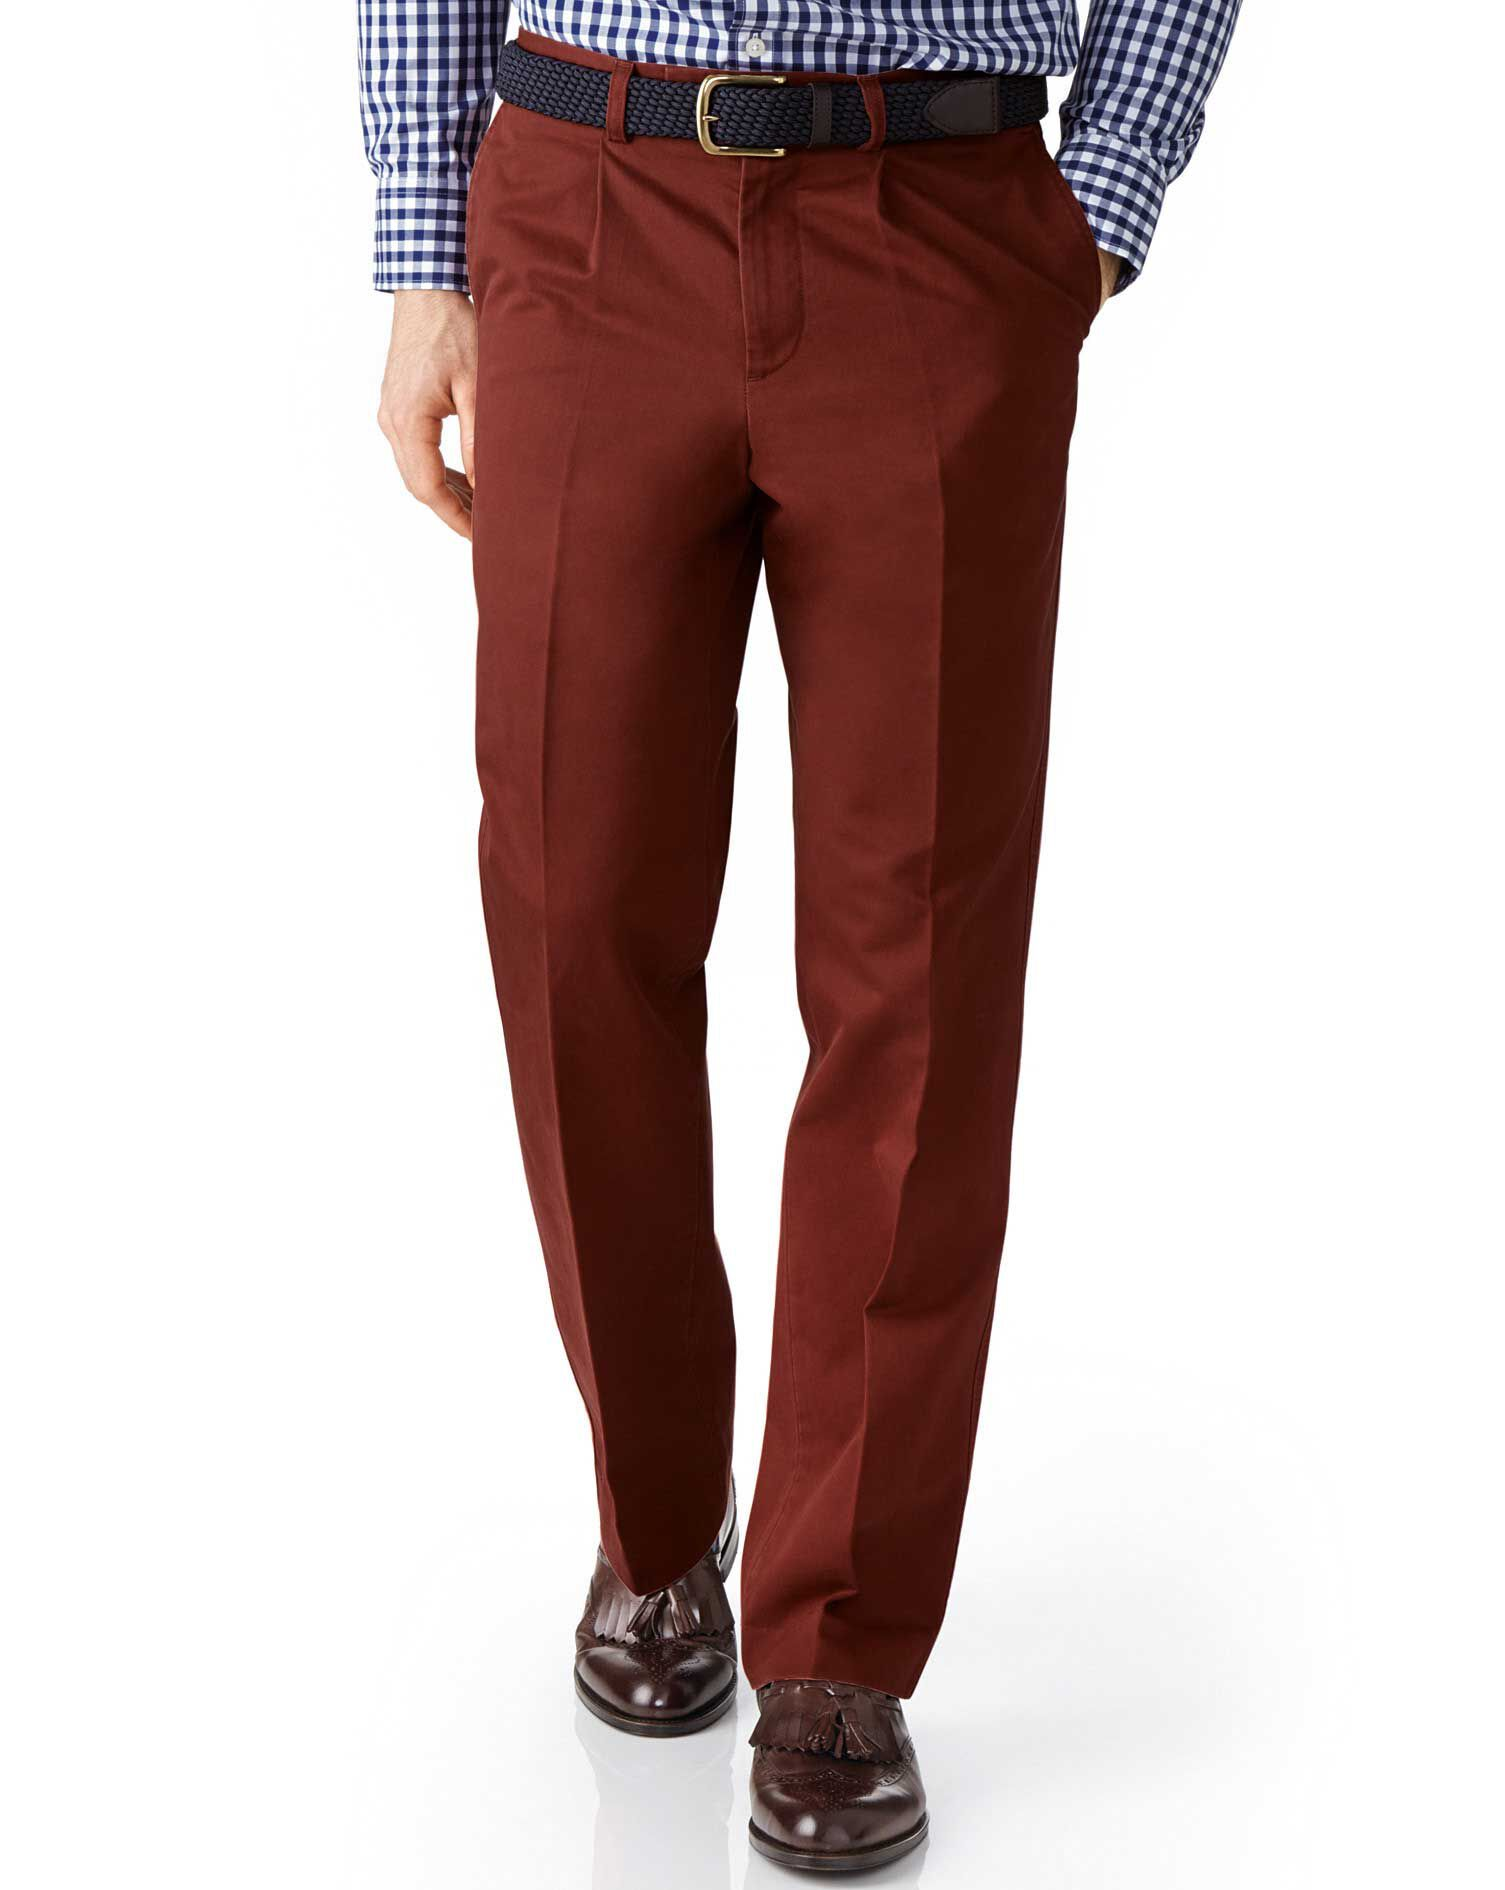 Copper Classic Fit Single Pleat Cotton Chino Trousers Size W32 L38 by Charles Tyrwhitt